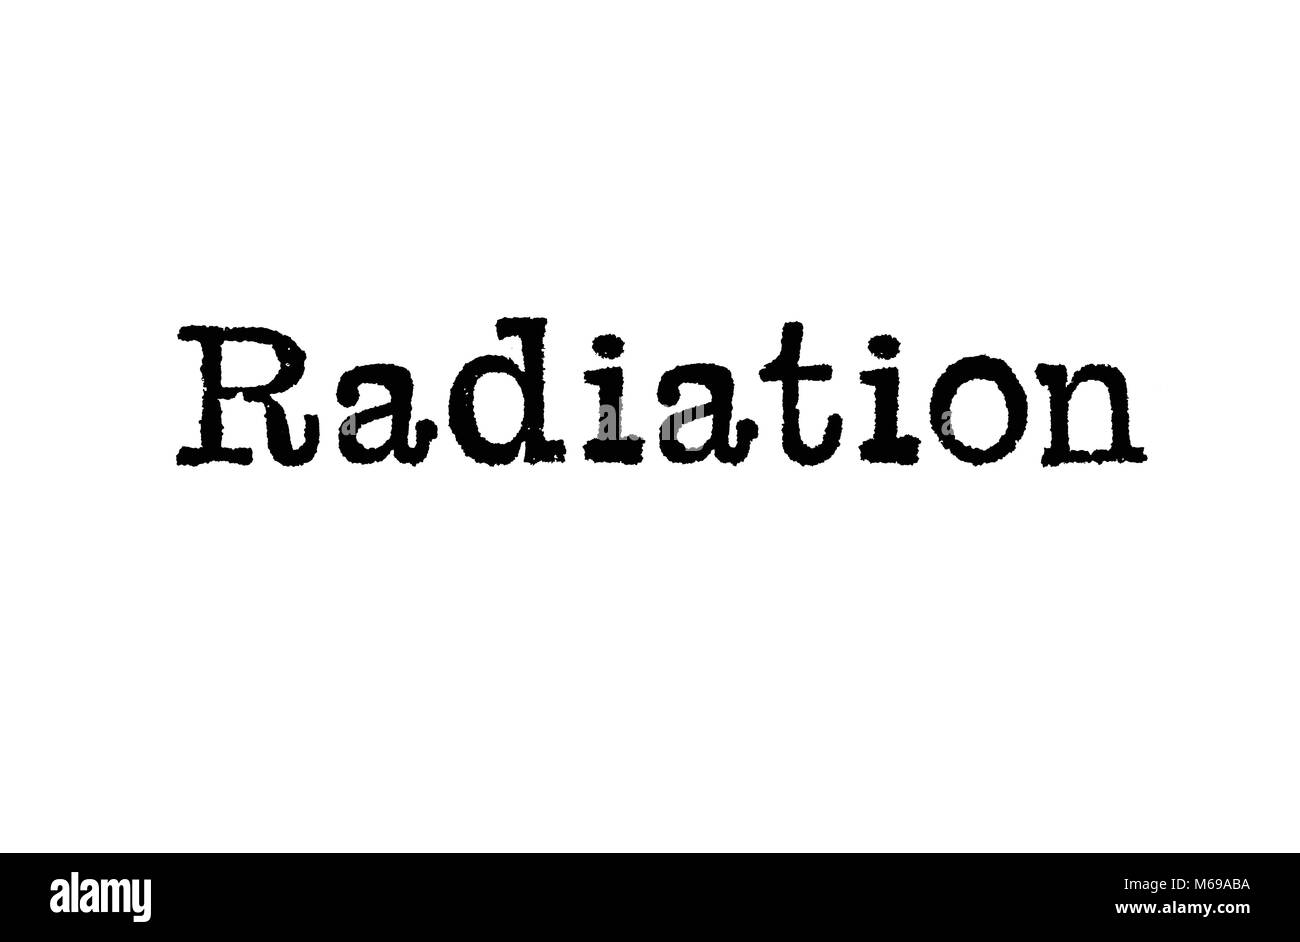 Alpha beta gamma stock photos alpha beta gamma stock images alamy the word radiation from a typewriter on a white background stock image biocorpaavc Choice Image